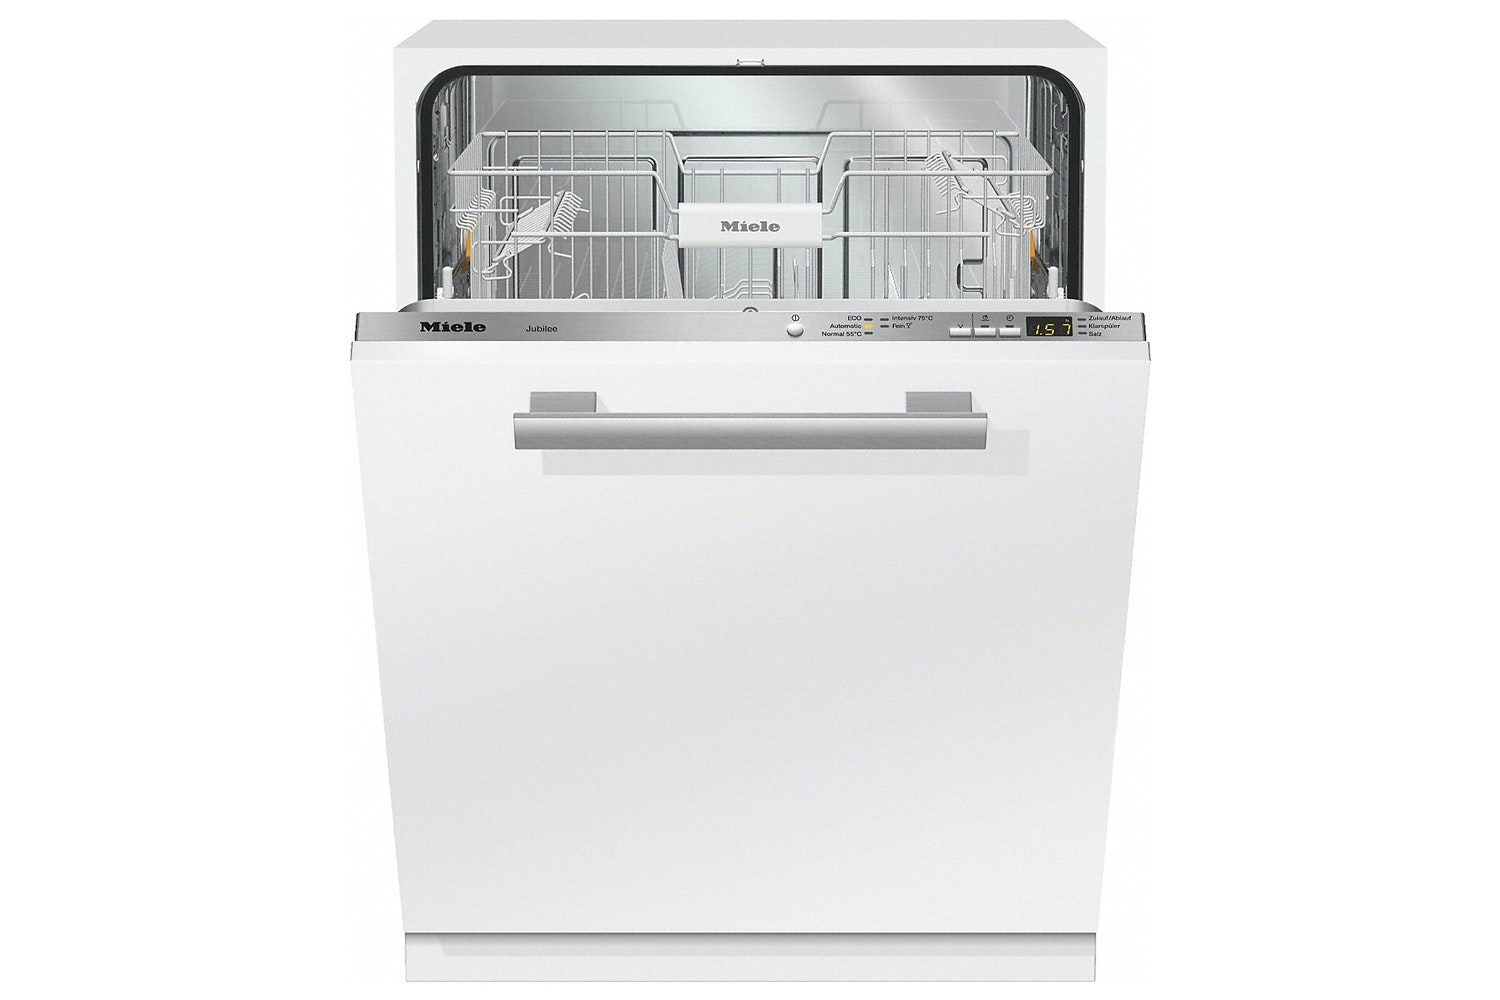 Miele G 4990 Vi Jubilee  Fully-integrated, full-size dishwasher   Delay start and countdown indicator for great entry-level value